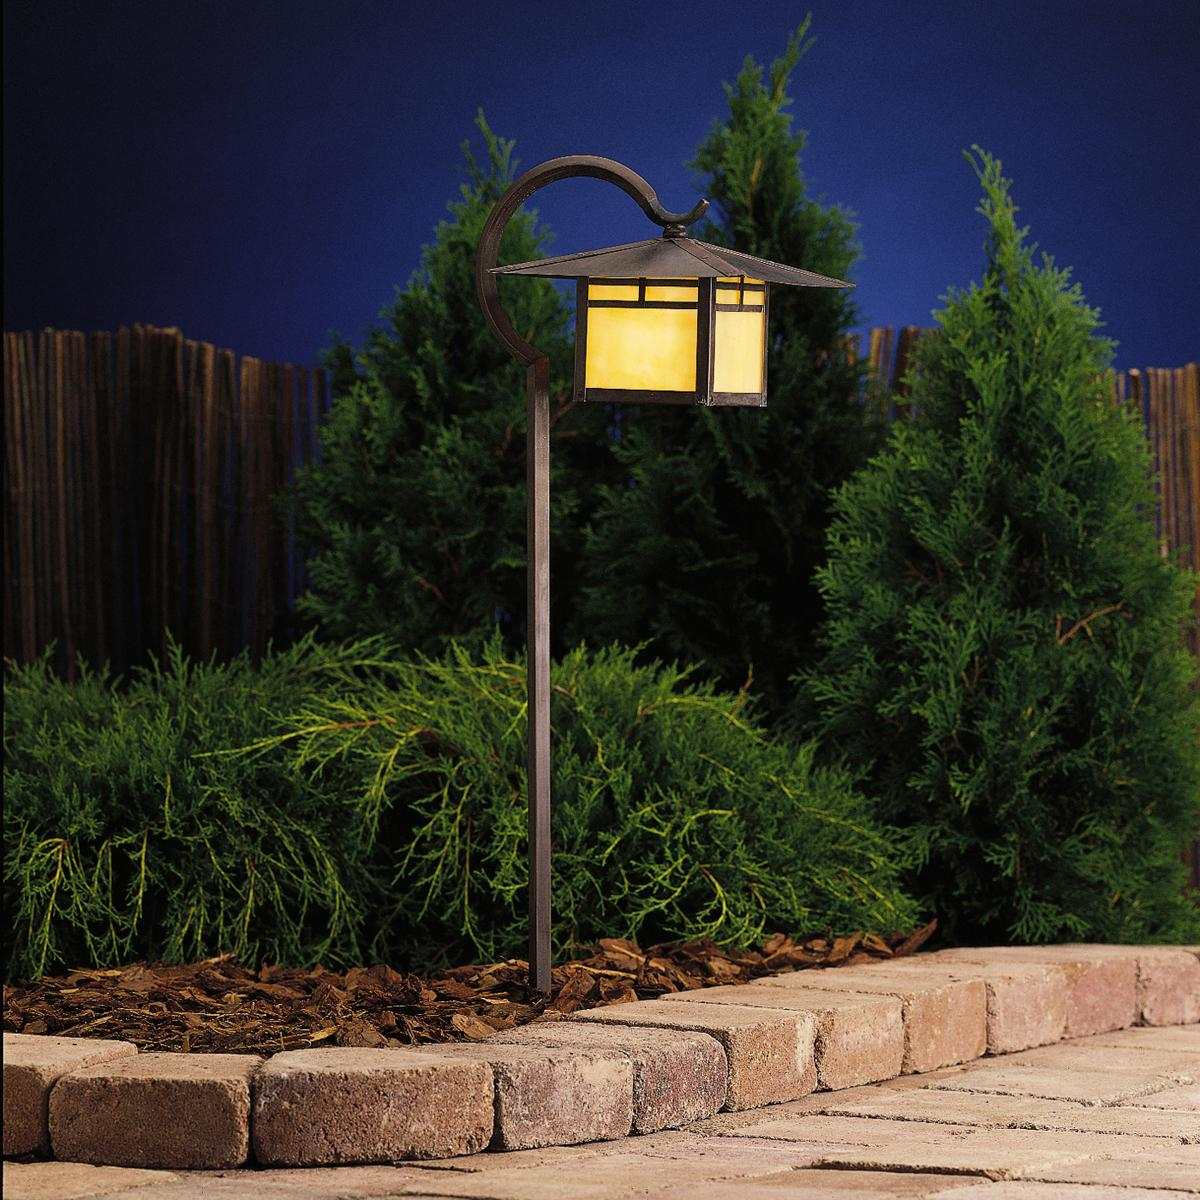 Low voltage landscape lighting for safety & beauty